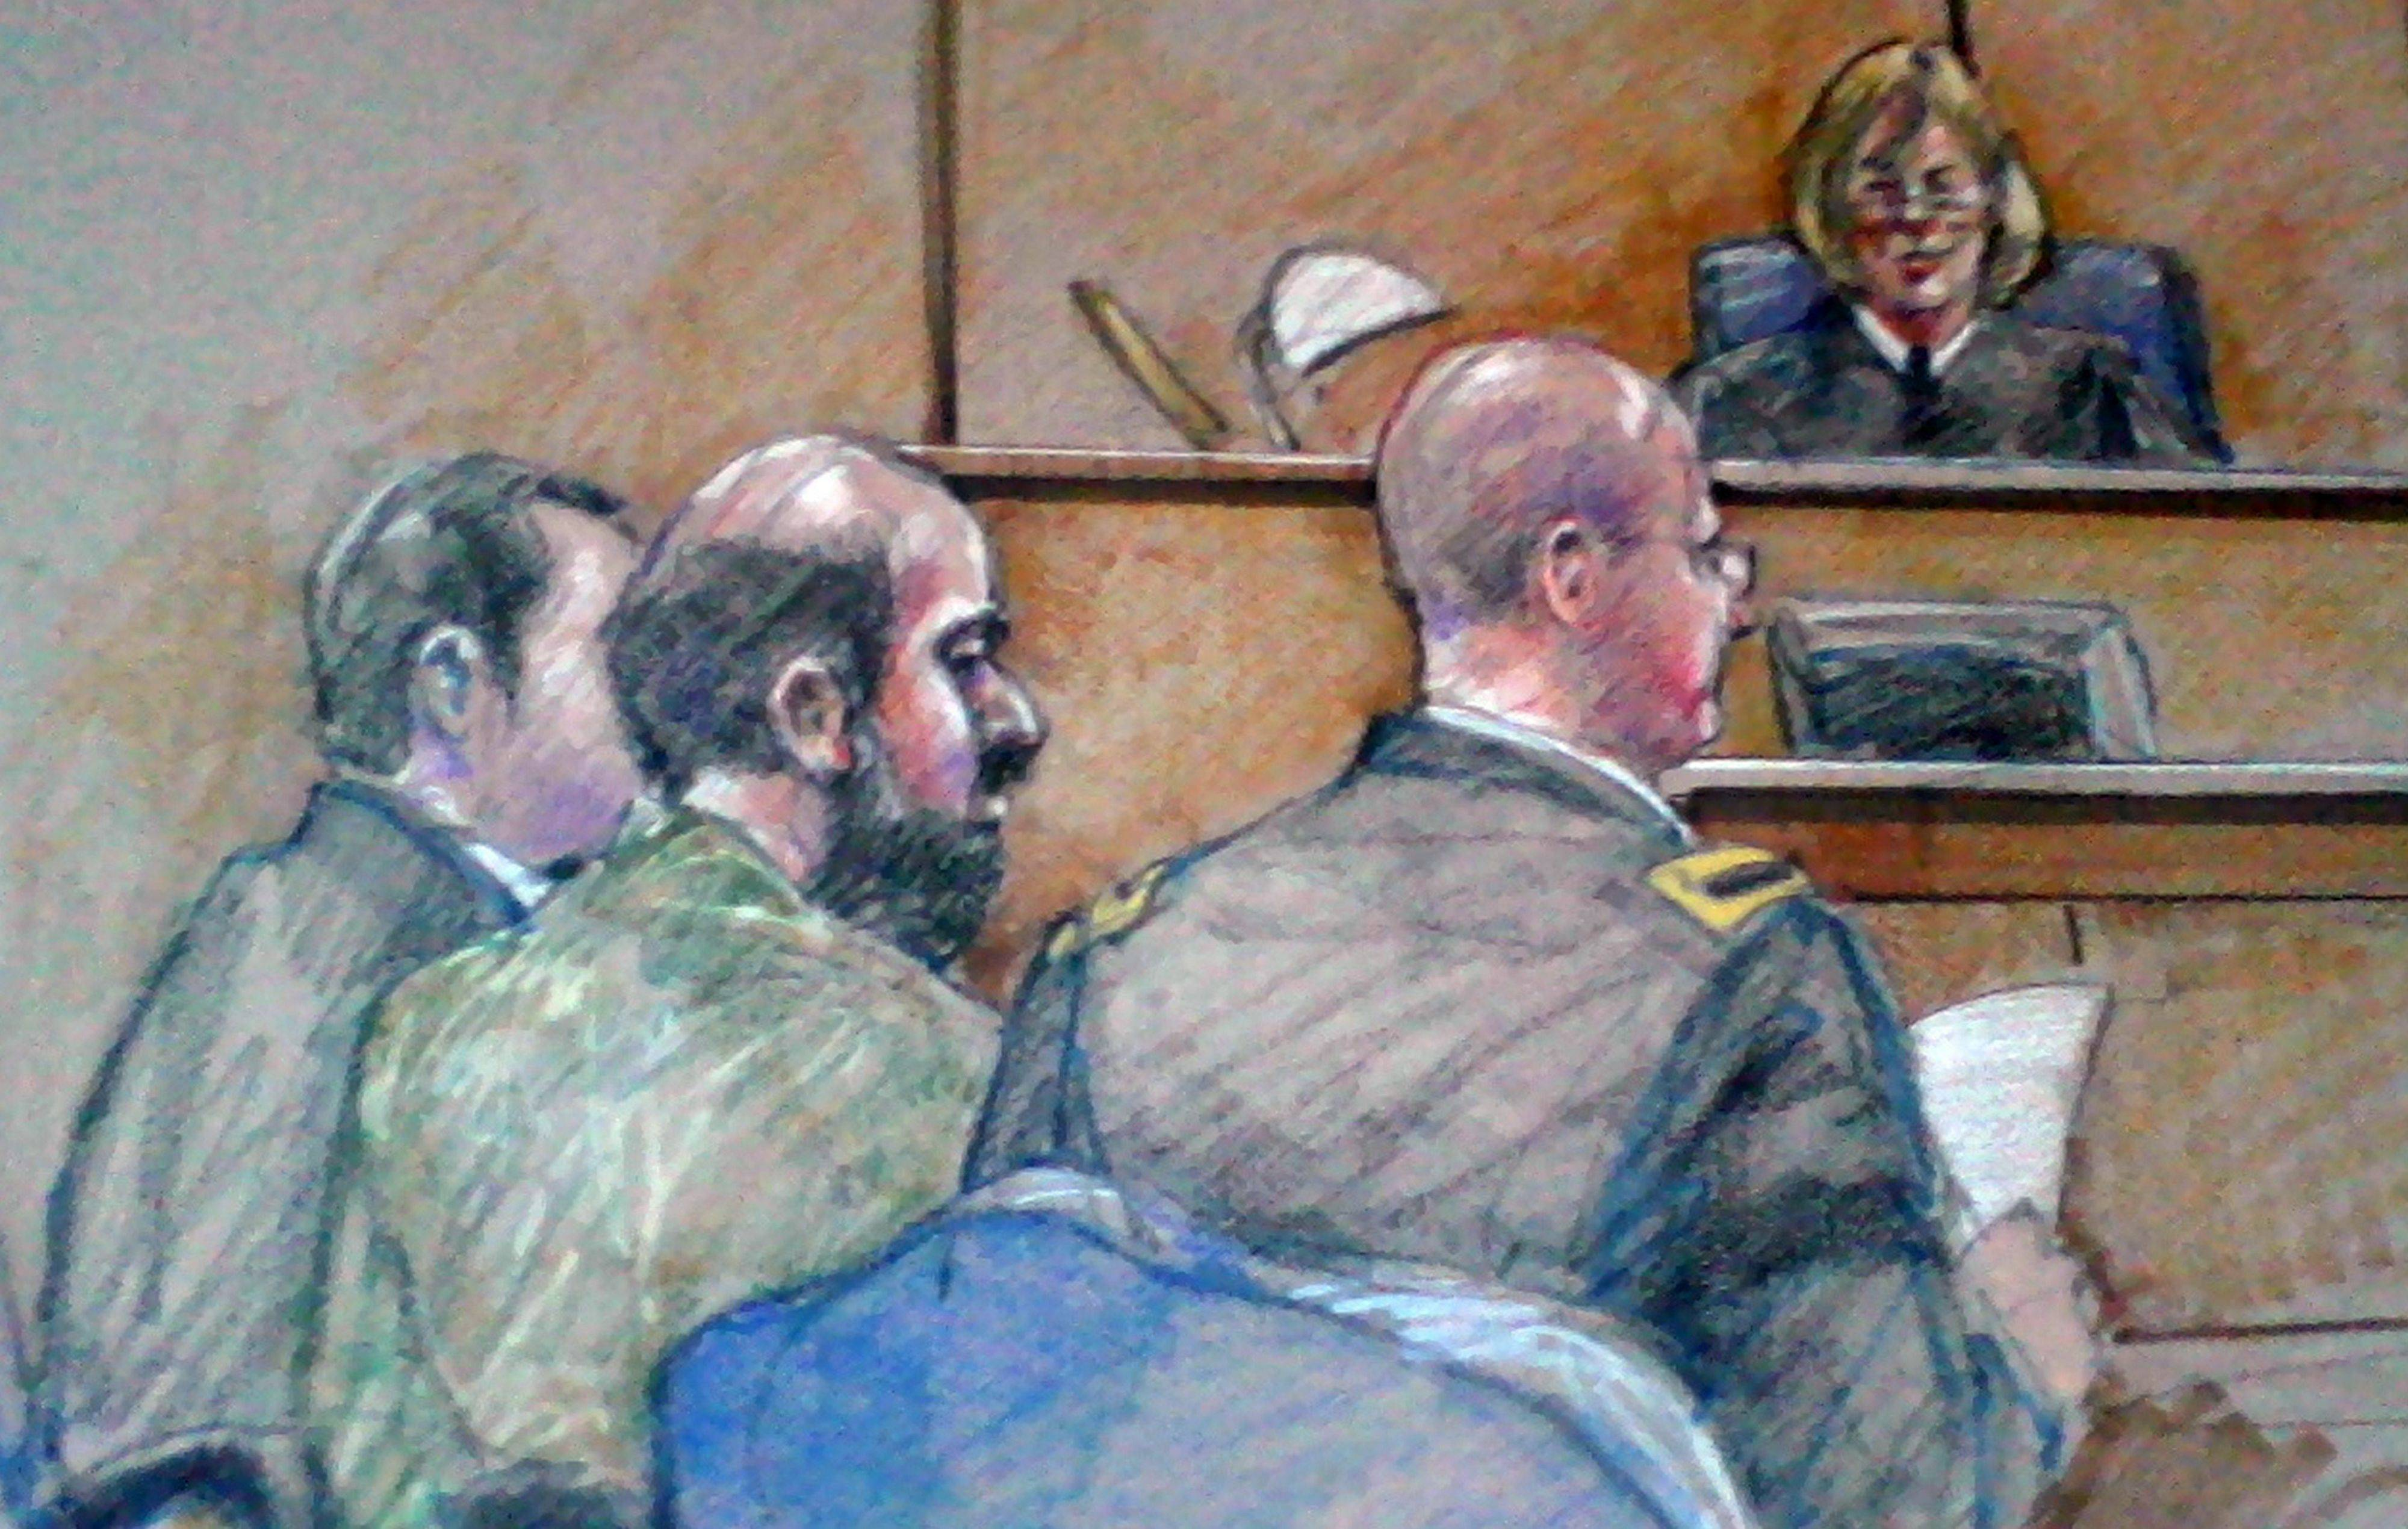 In this Dec. 18, 2012, courtroom sketch, U.S. Army Maj. Nidal Hasan, center foreground with back showing, is seen sitting between members of His defense team during a hearing in Fort Hood, Texas. The Army psychiatrist�s trial was scheduled to begin last week.